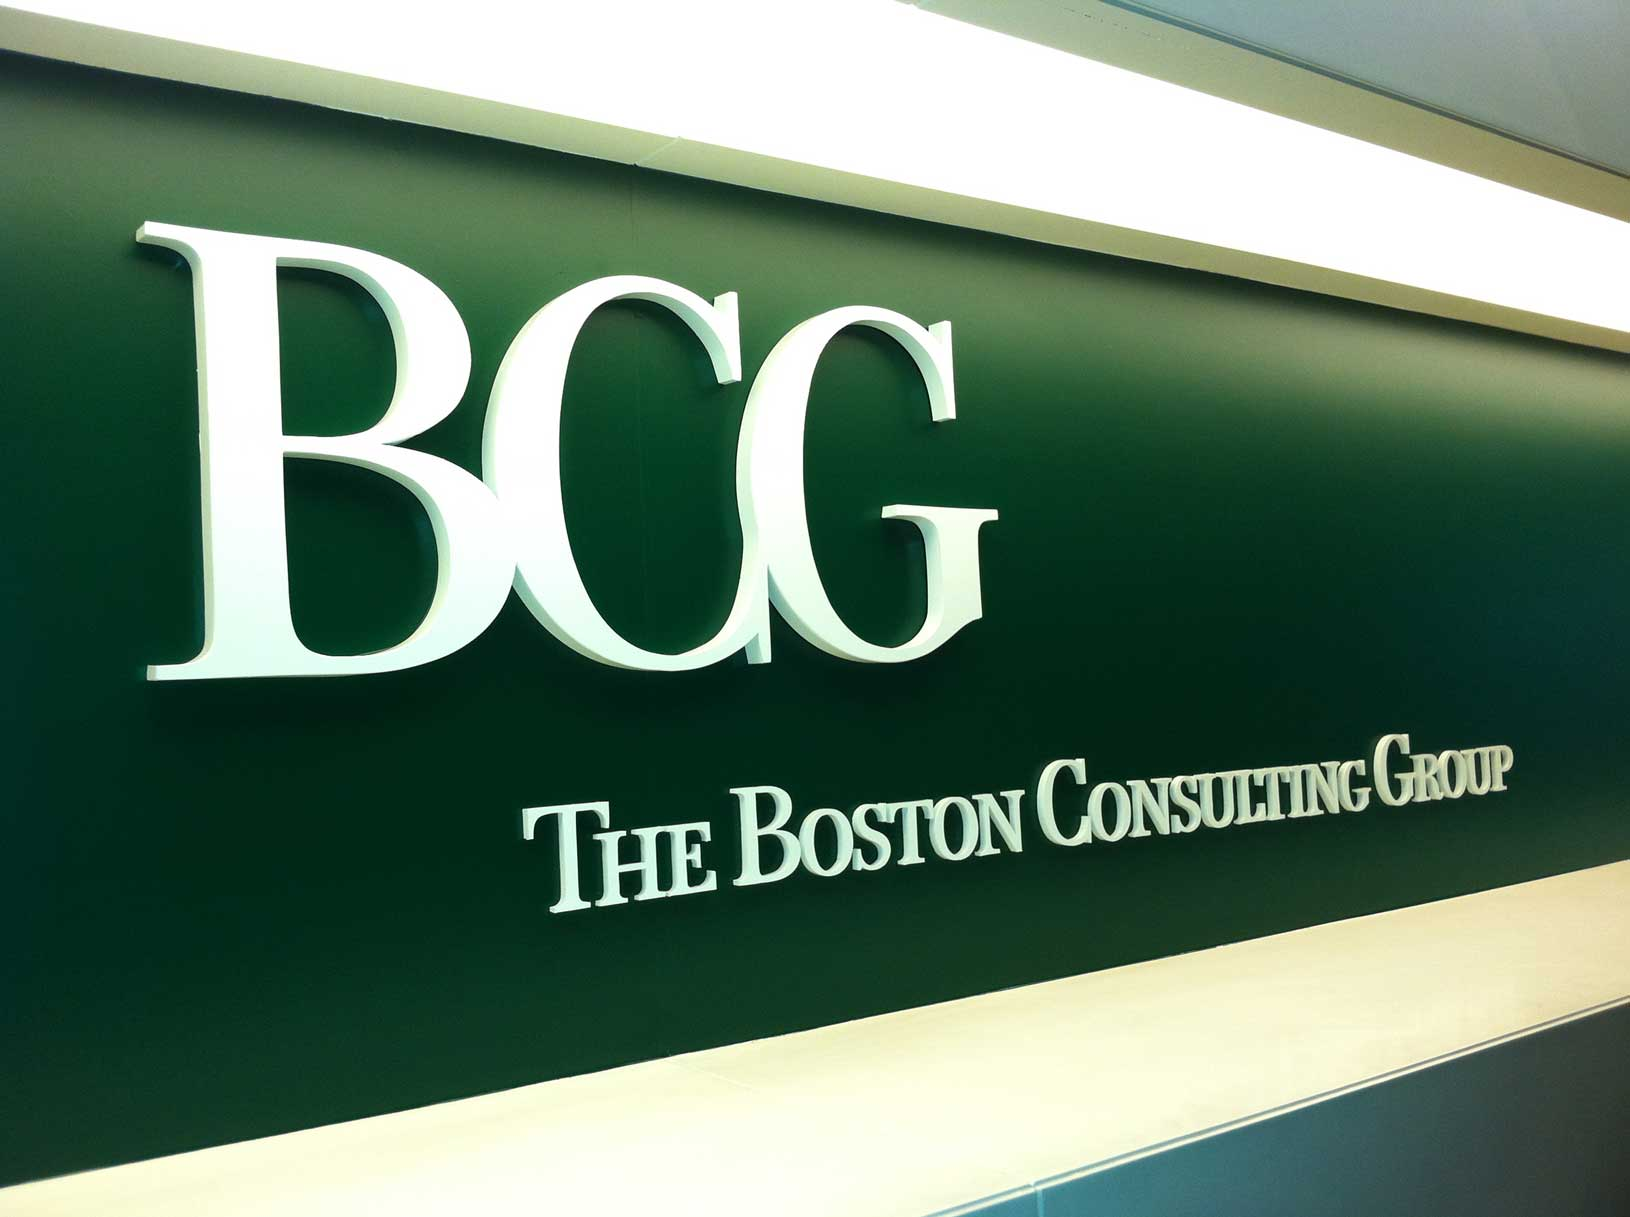 The boston consulting group zecraft for Design consultancy boston